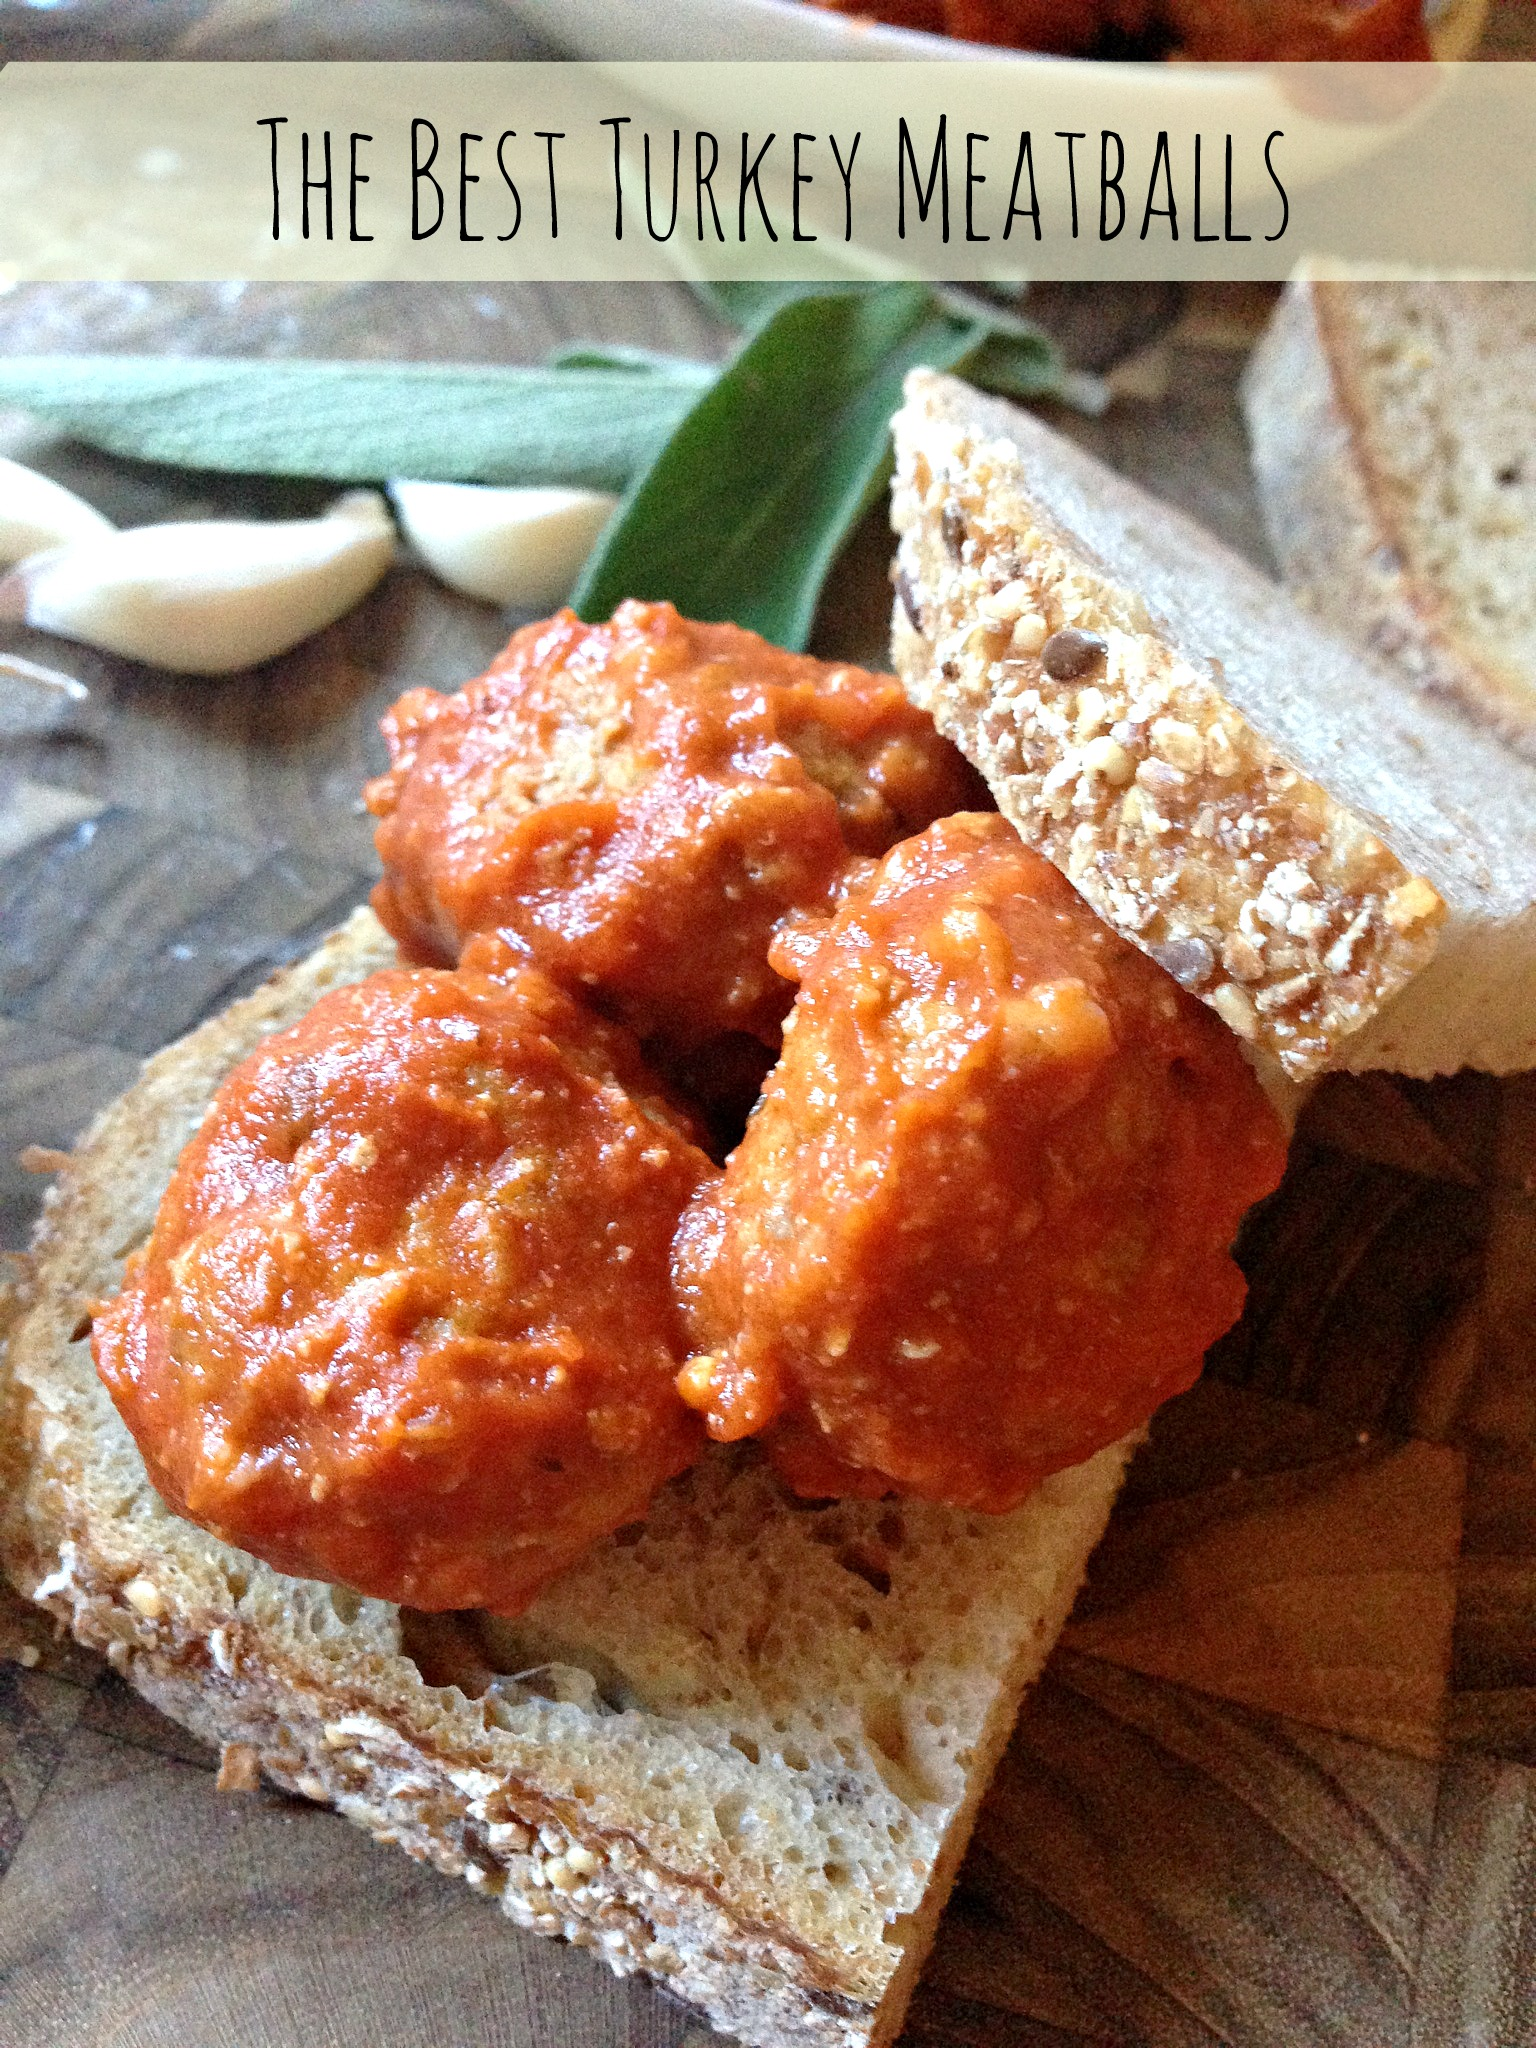 The Best Turkey Meatballs